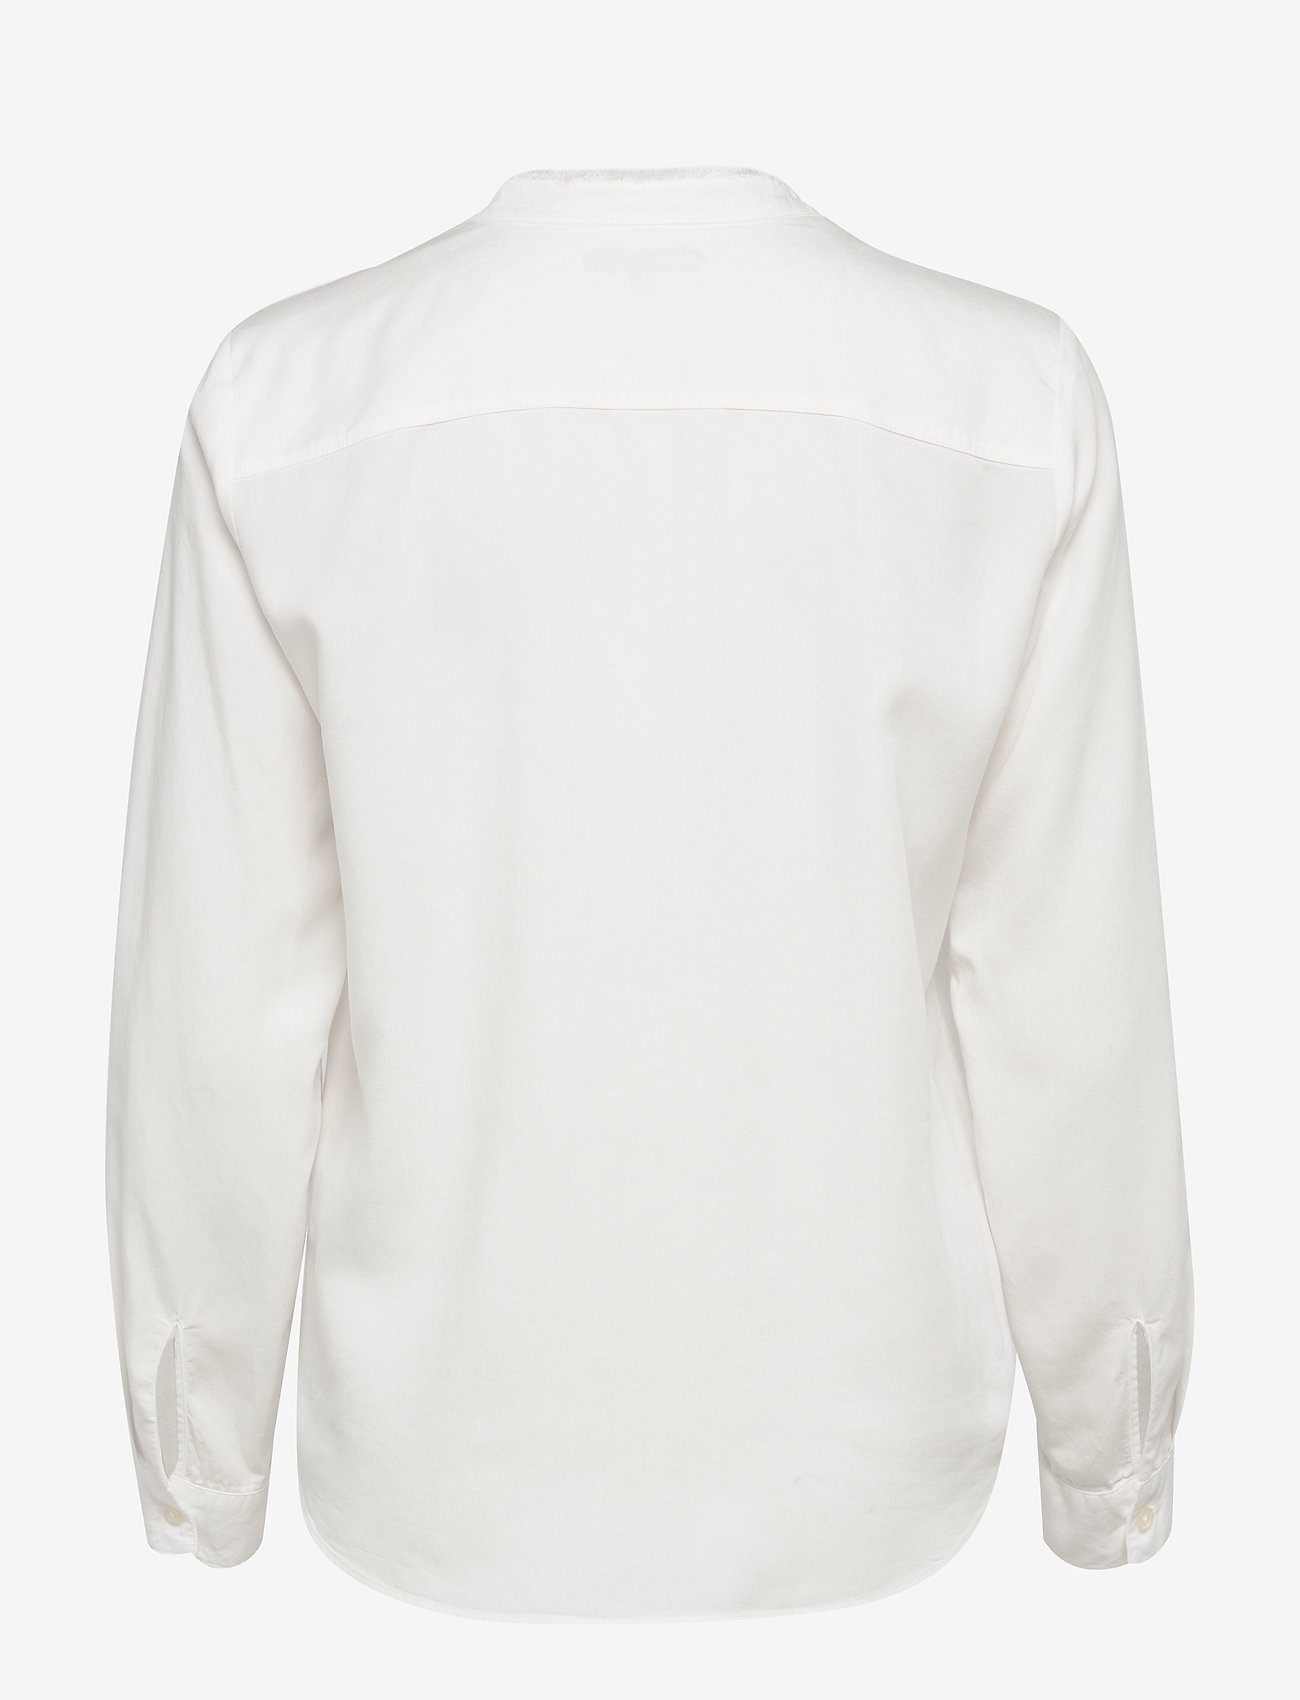 Marc O'Polo - Blouse, round neck with fringes, lo - langærmede skjorter - off white - 1